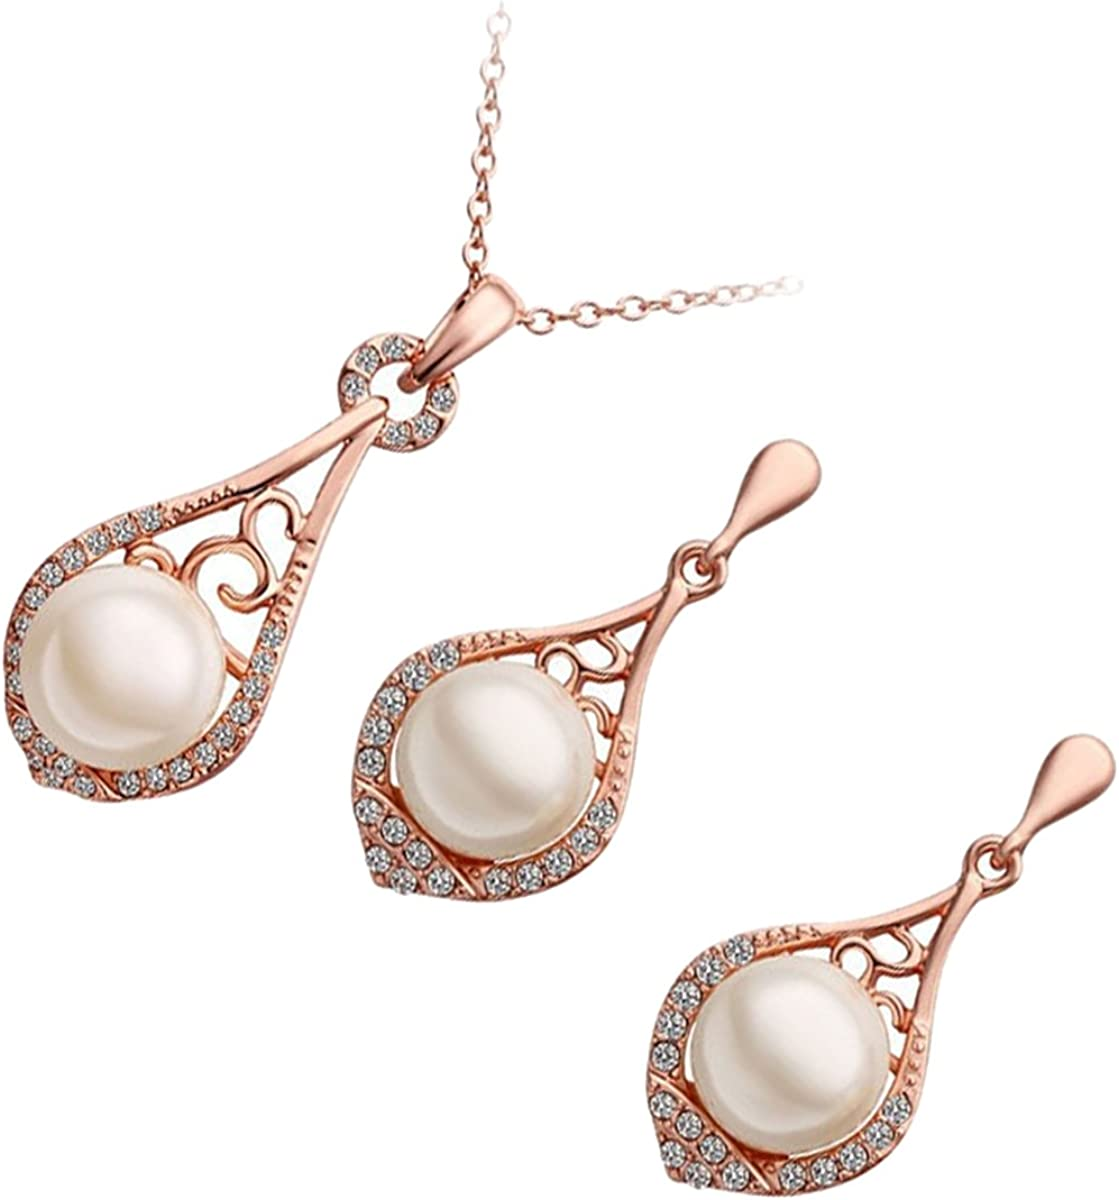 GWG Women's Jewelry Sets Gift Precious Metal Plated Set of Pendant Necklace and Earrings Pearl Adorned by Clear Crystals for Women